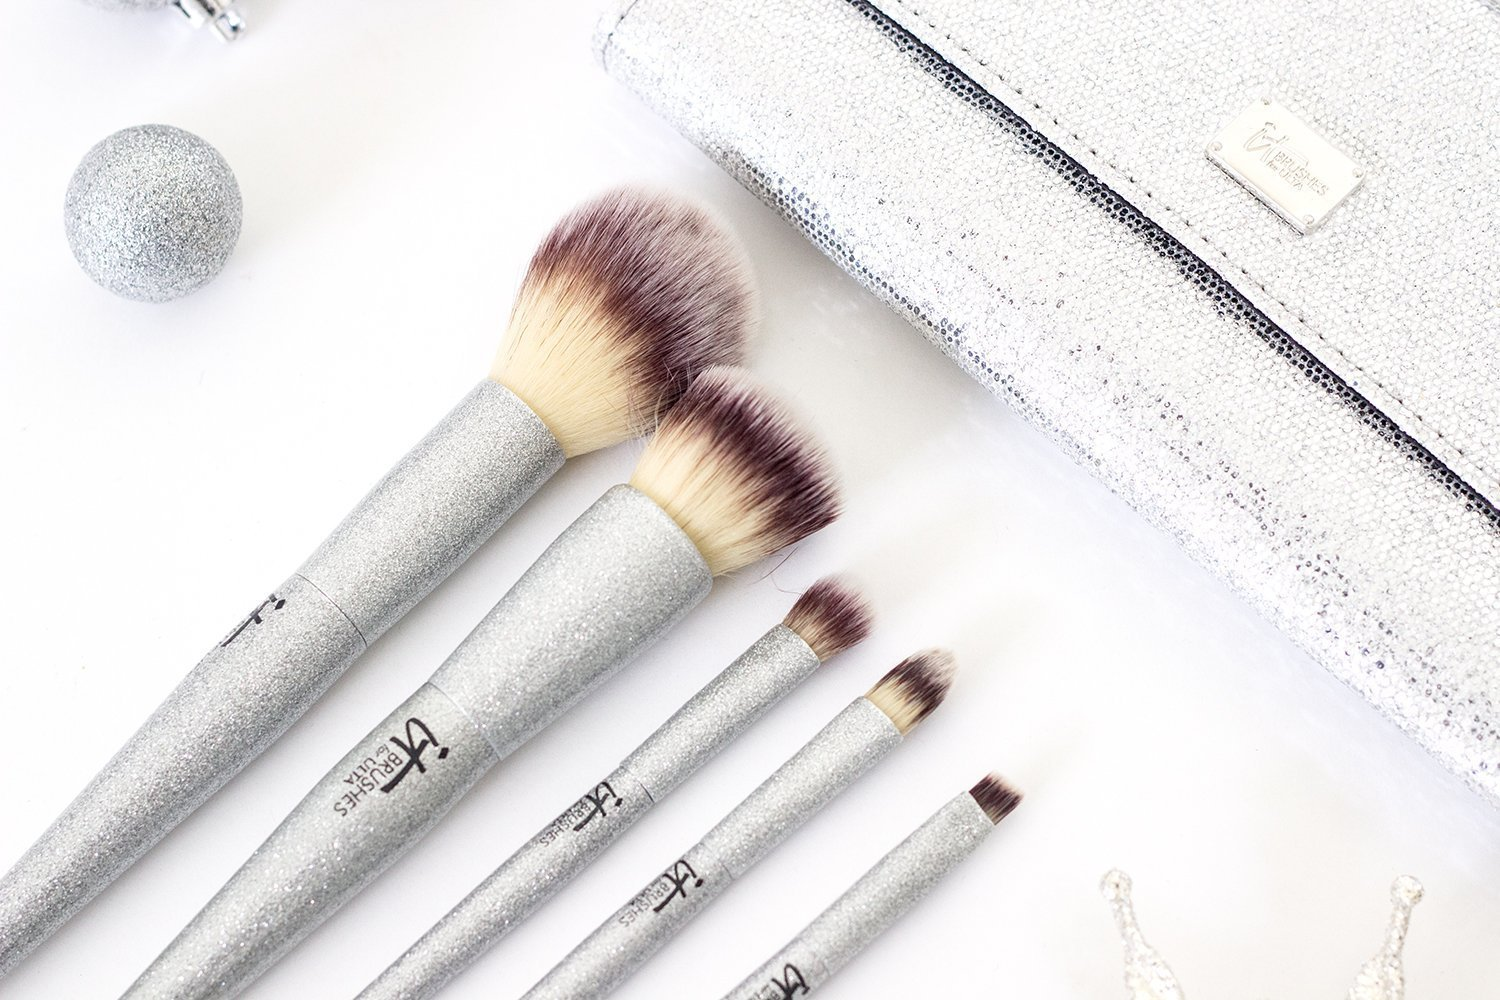 All That Glitters It Cosmetics For Ulta Brush Set Review Little